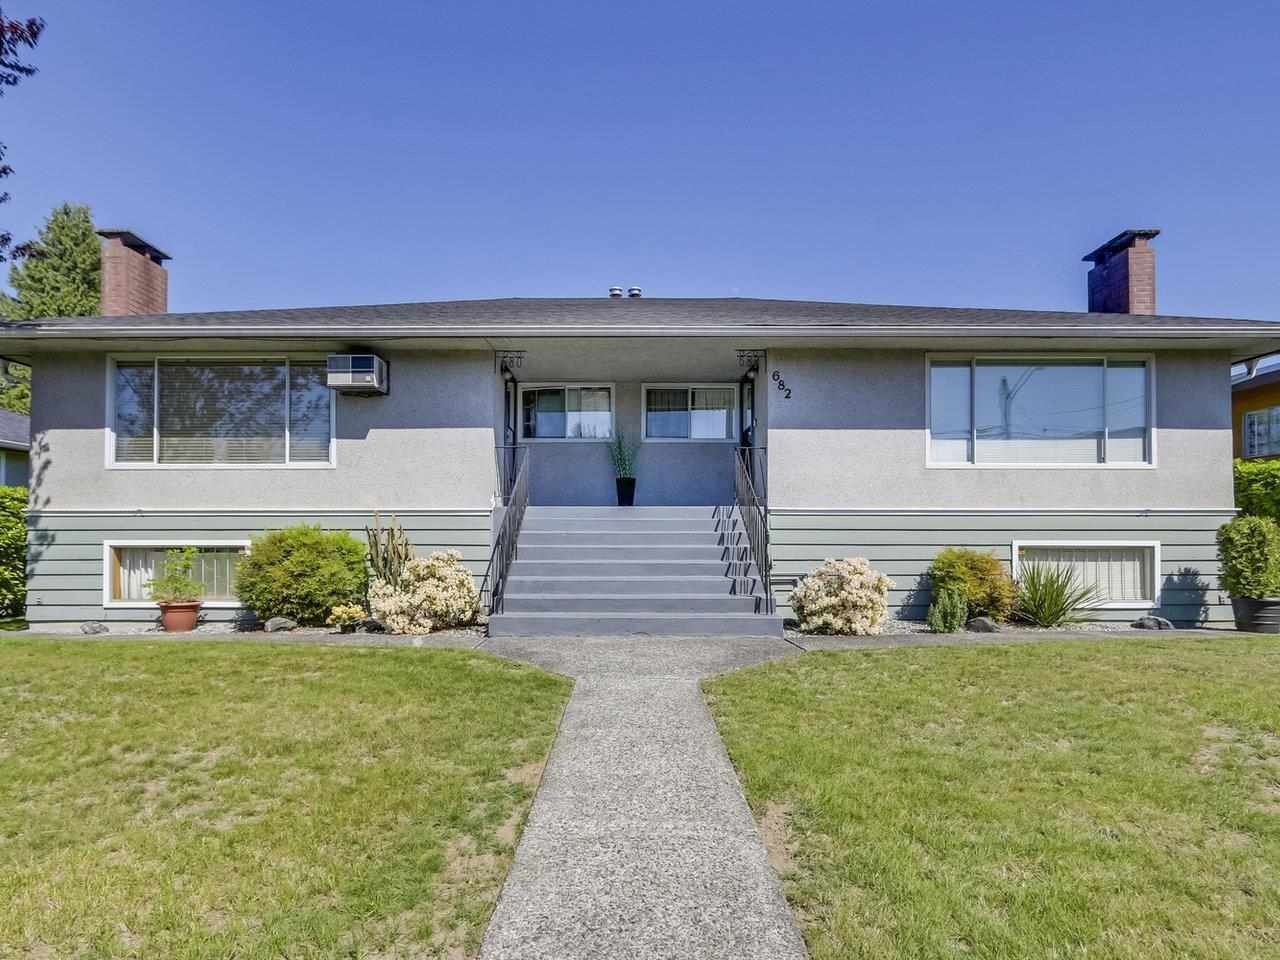 Main Photo: 680 - 682 SPERLING Avenue in Burnaby: Sperling-Duthie Duplex for sale (Burnaby North)  : MLS®# R2589206